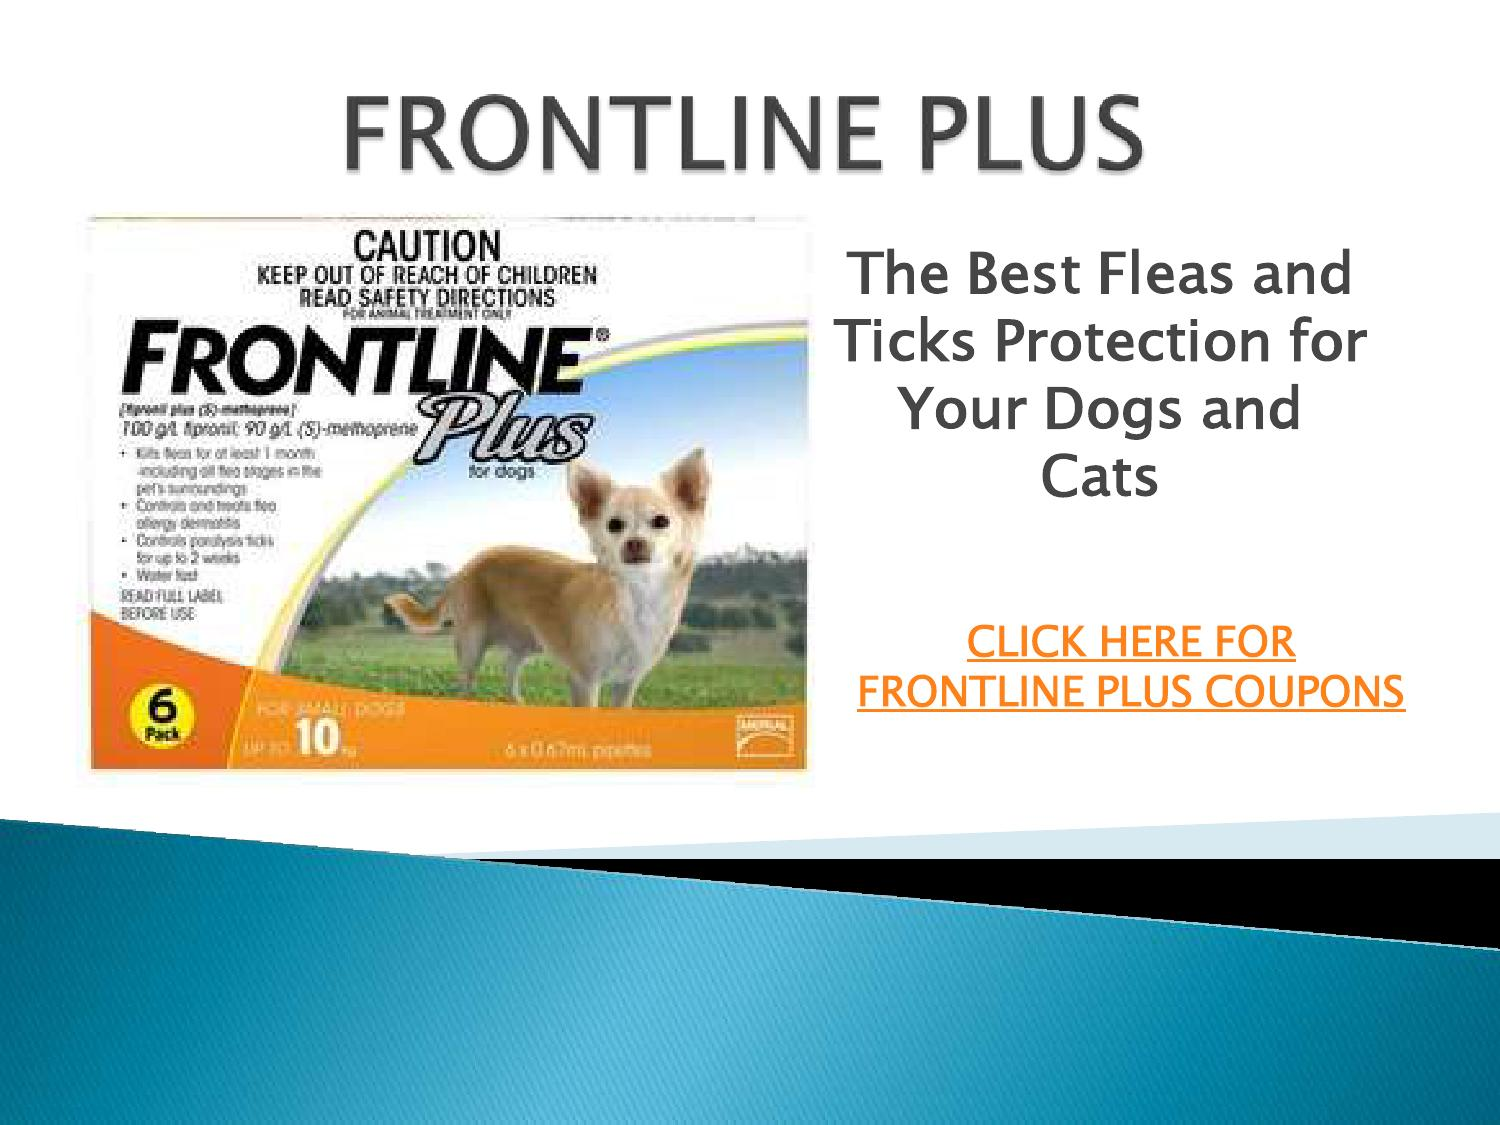 image about Bravecto Printable Coupons called Coupon for frontline - Osborne chiropractic